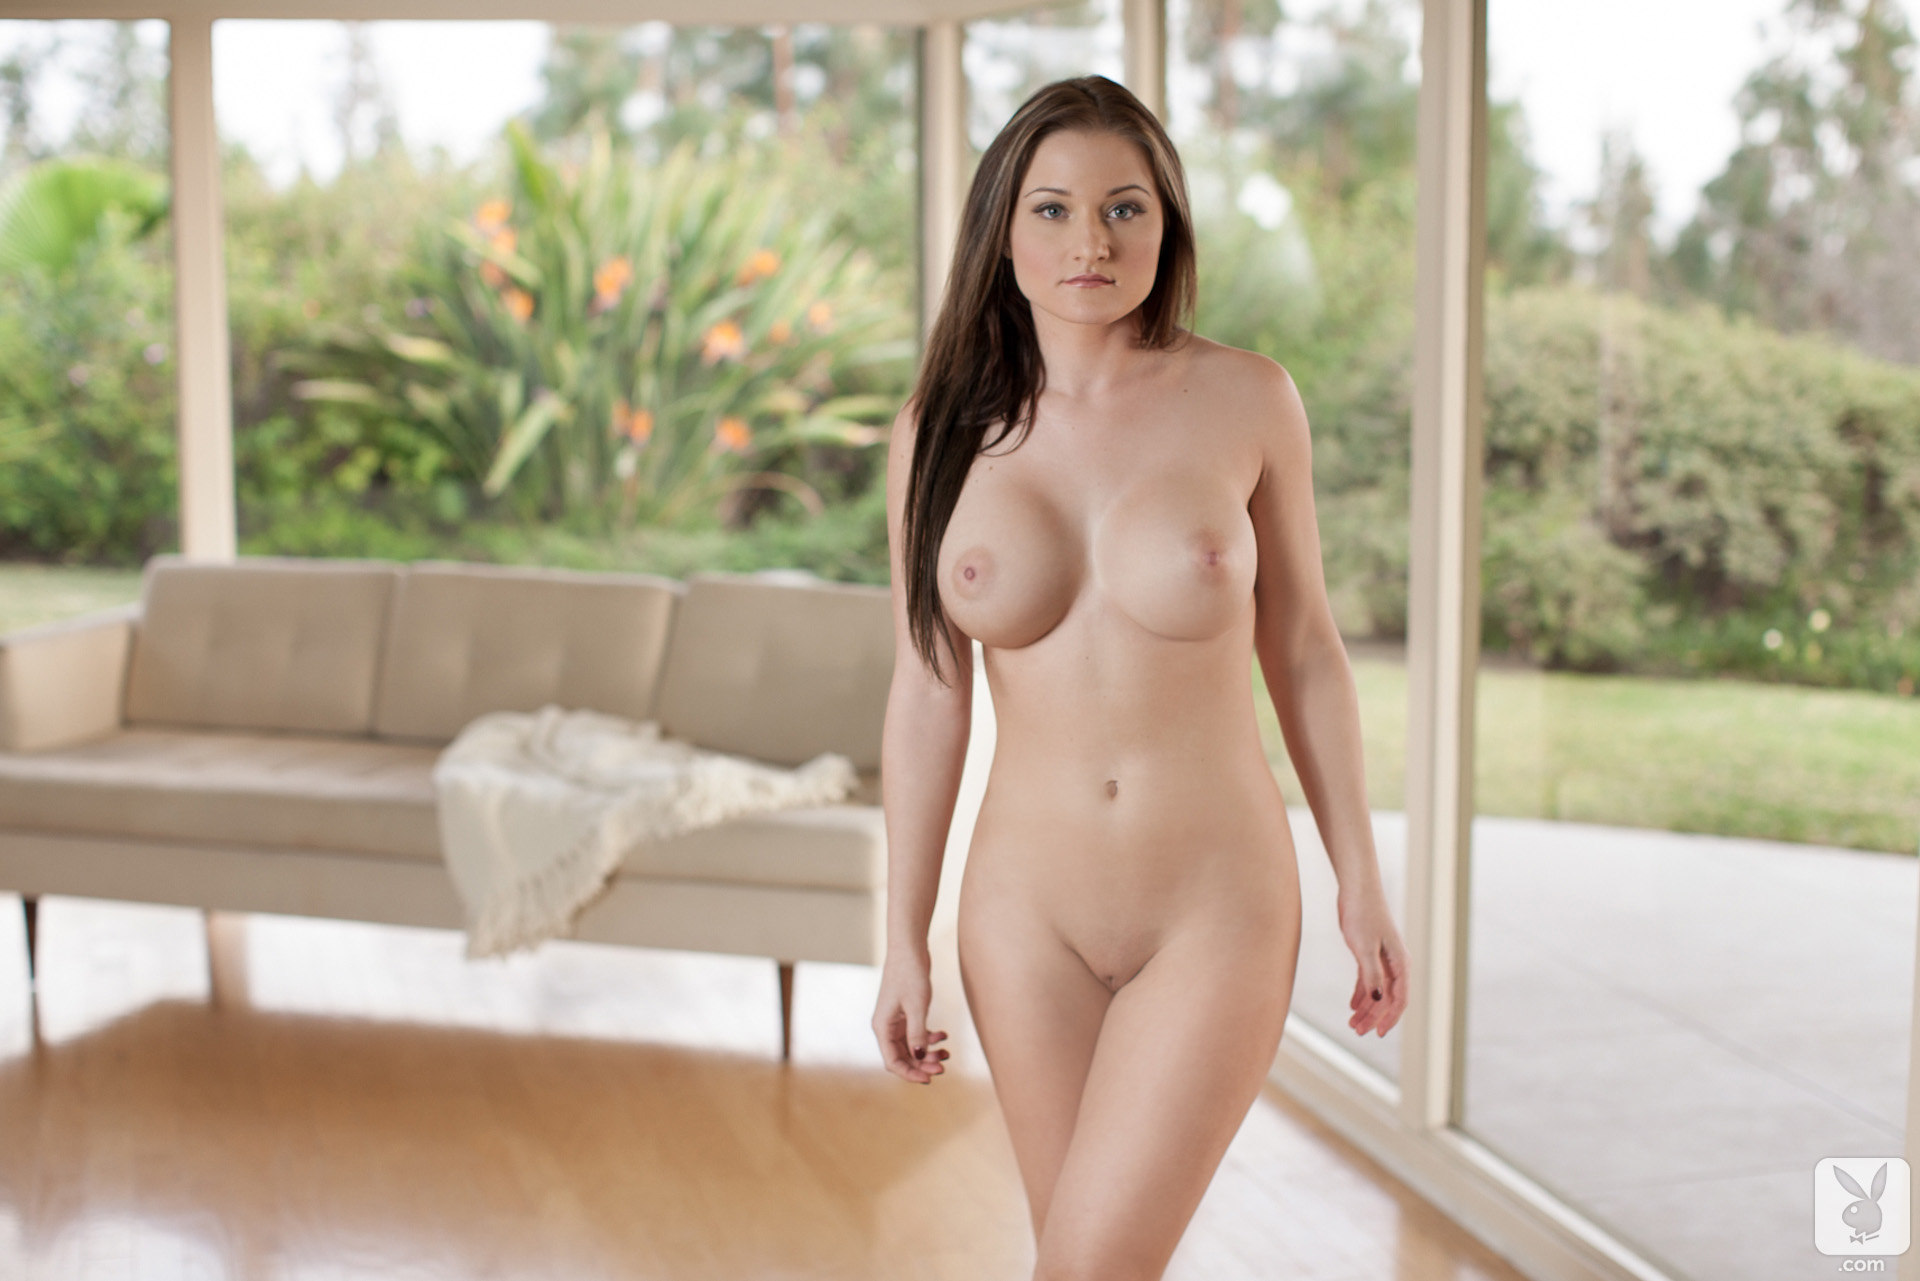 Ashley smith nude are mistaken